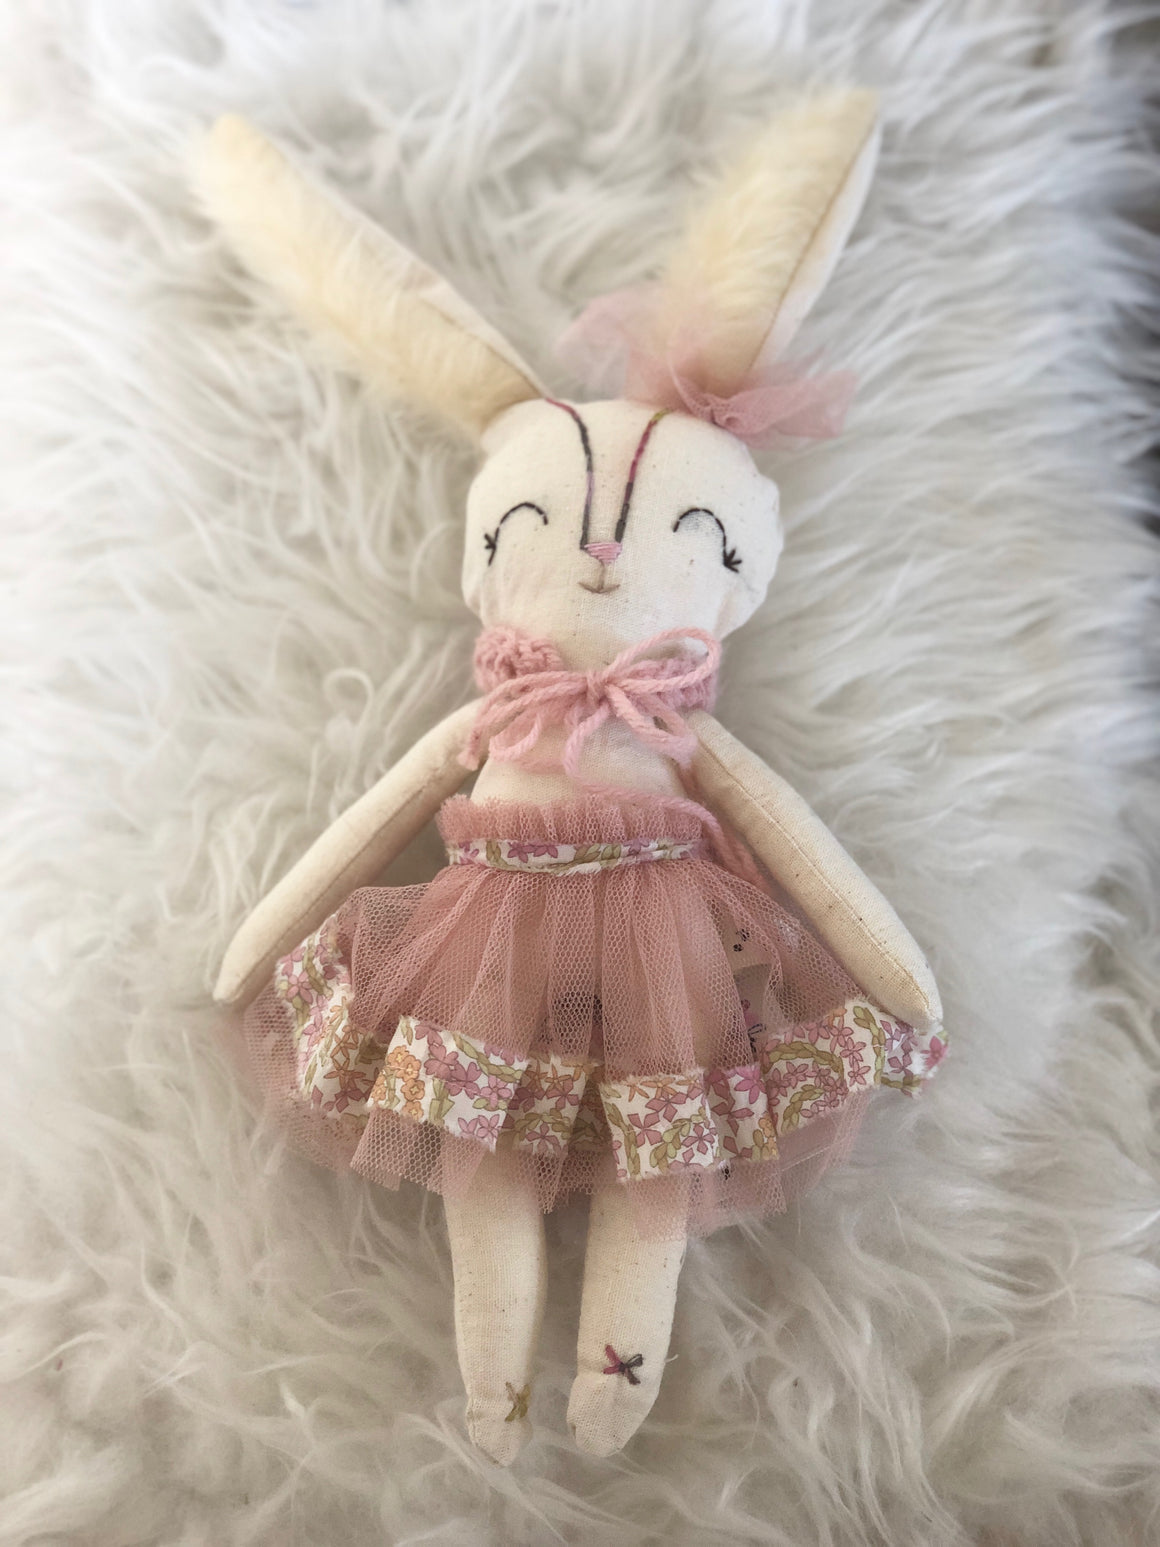 Lulu Winter Pink Bunny Doll by La Maison de Poupee